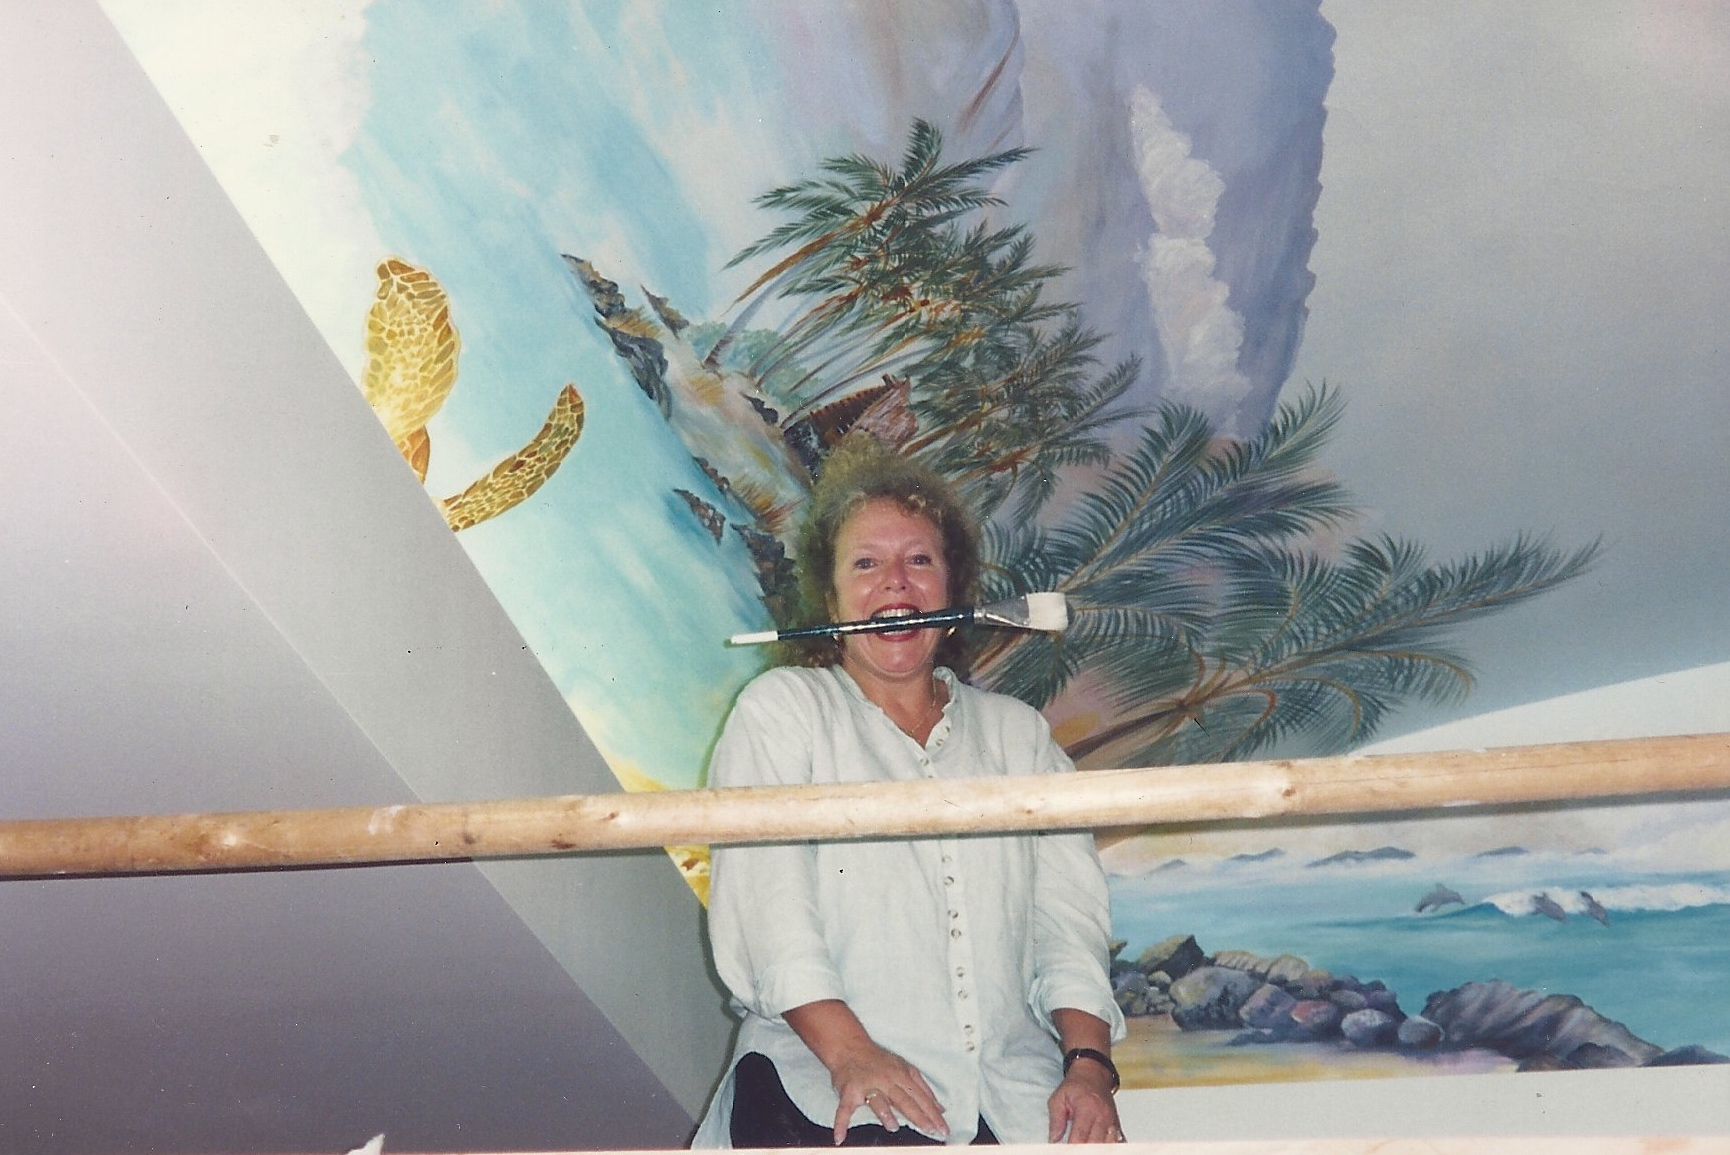 Marcia painting a ceiling mural at Mauna Lani Beach Resort, HI in 1997